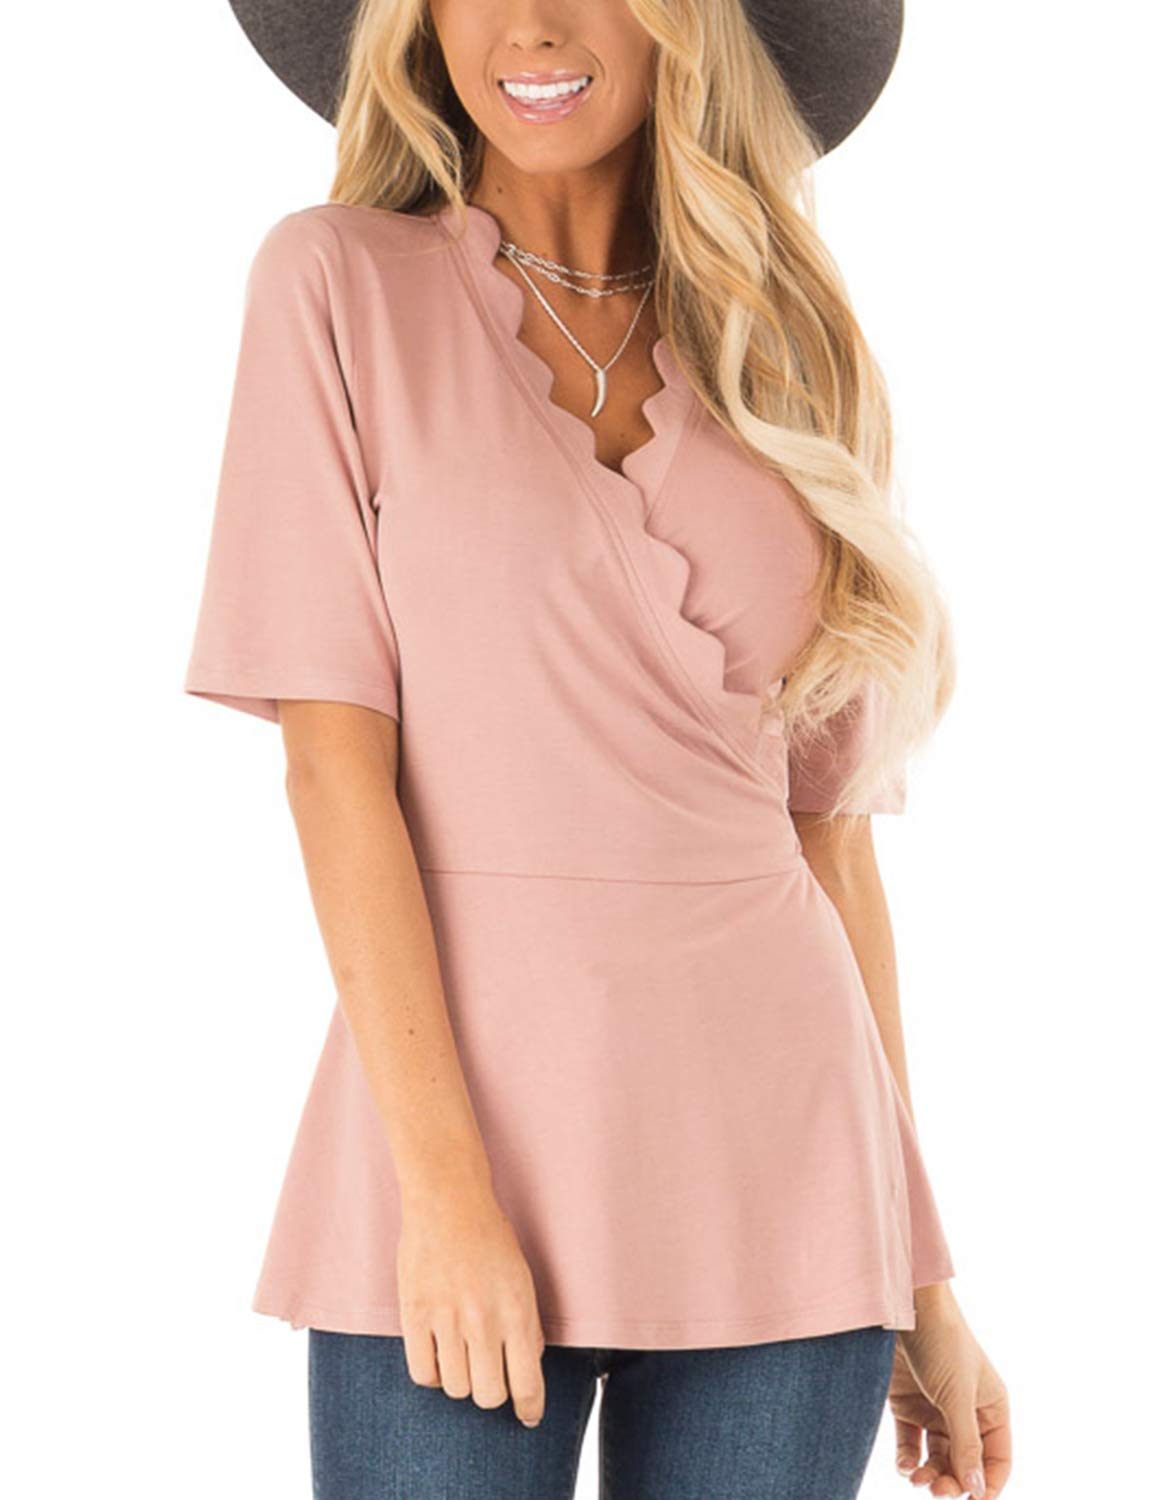 BMJL Women's V Neck T Shirt Short Sleeves Basic Wrap Shirt Sexy Casual Top Rippled Edge Tie M Pink